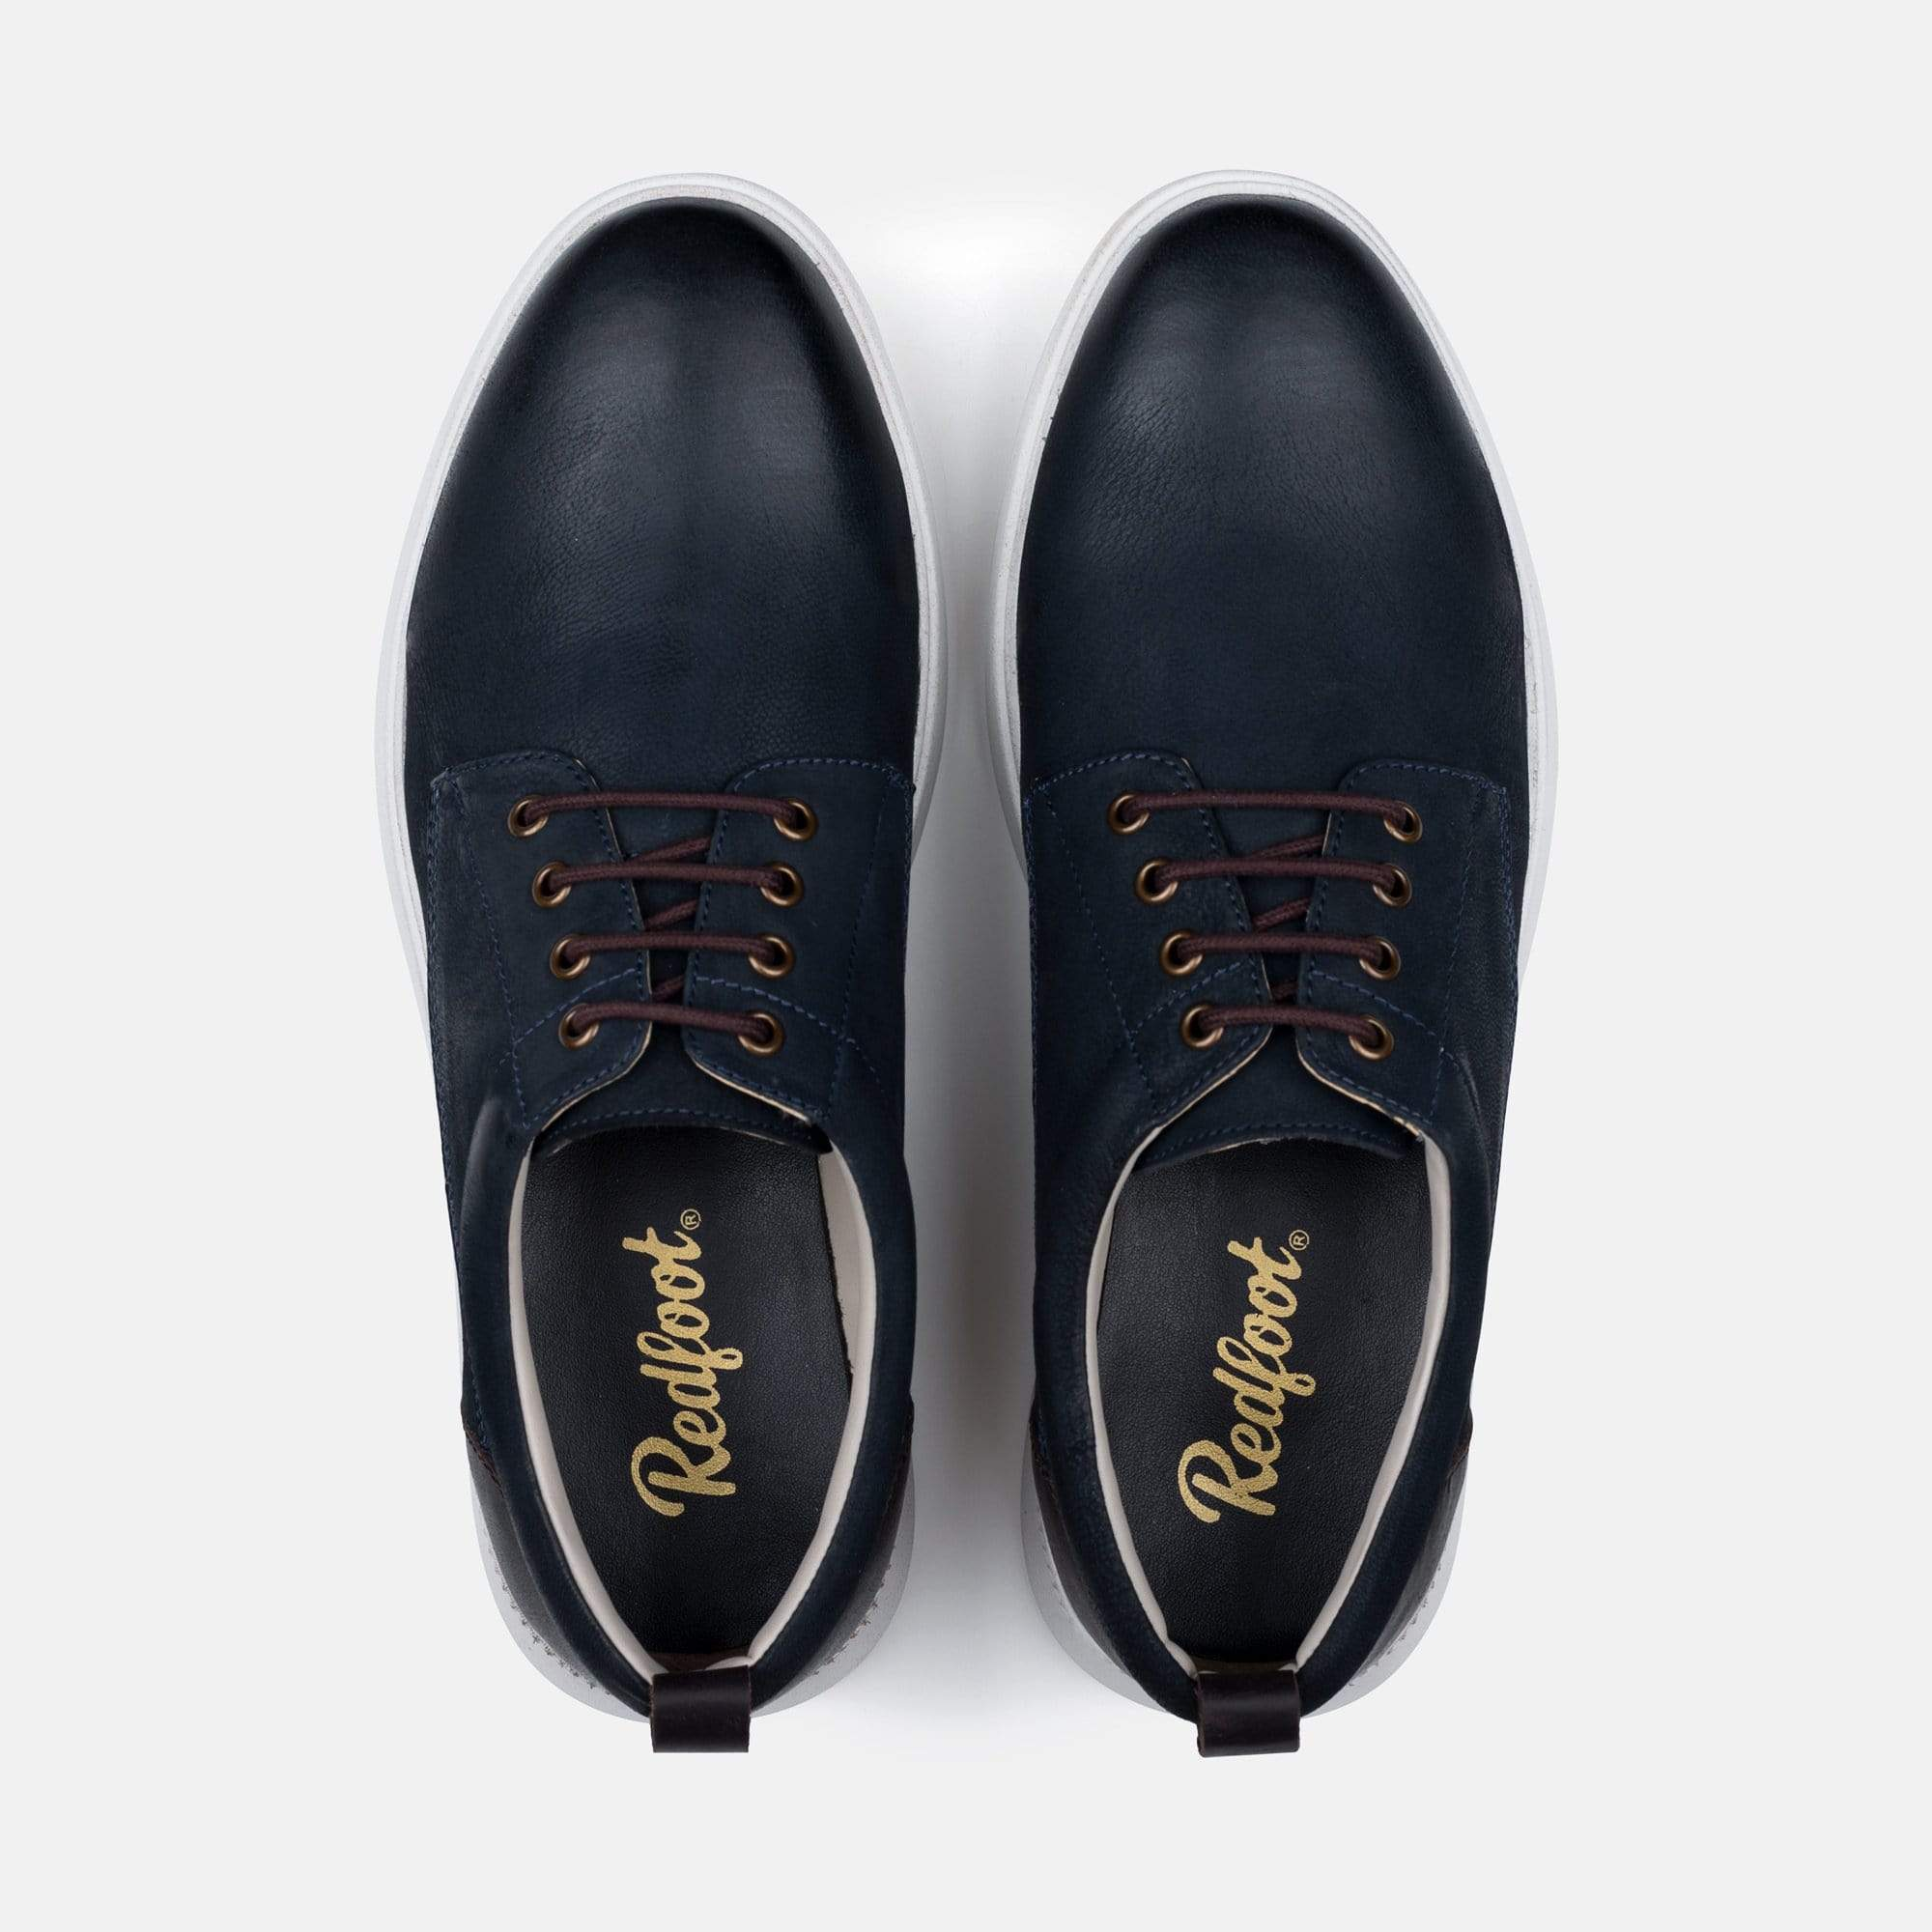 Redfoot Footwear MENS REDFOOT MOTION NAVY CASUAL DERBY BOOT